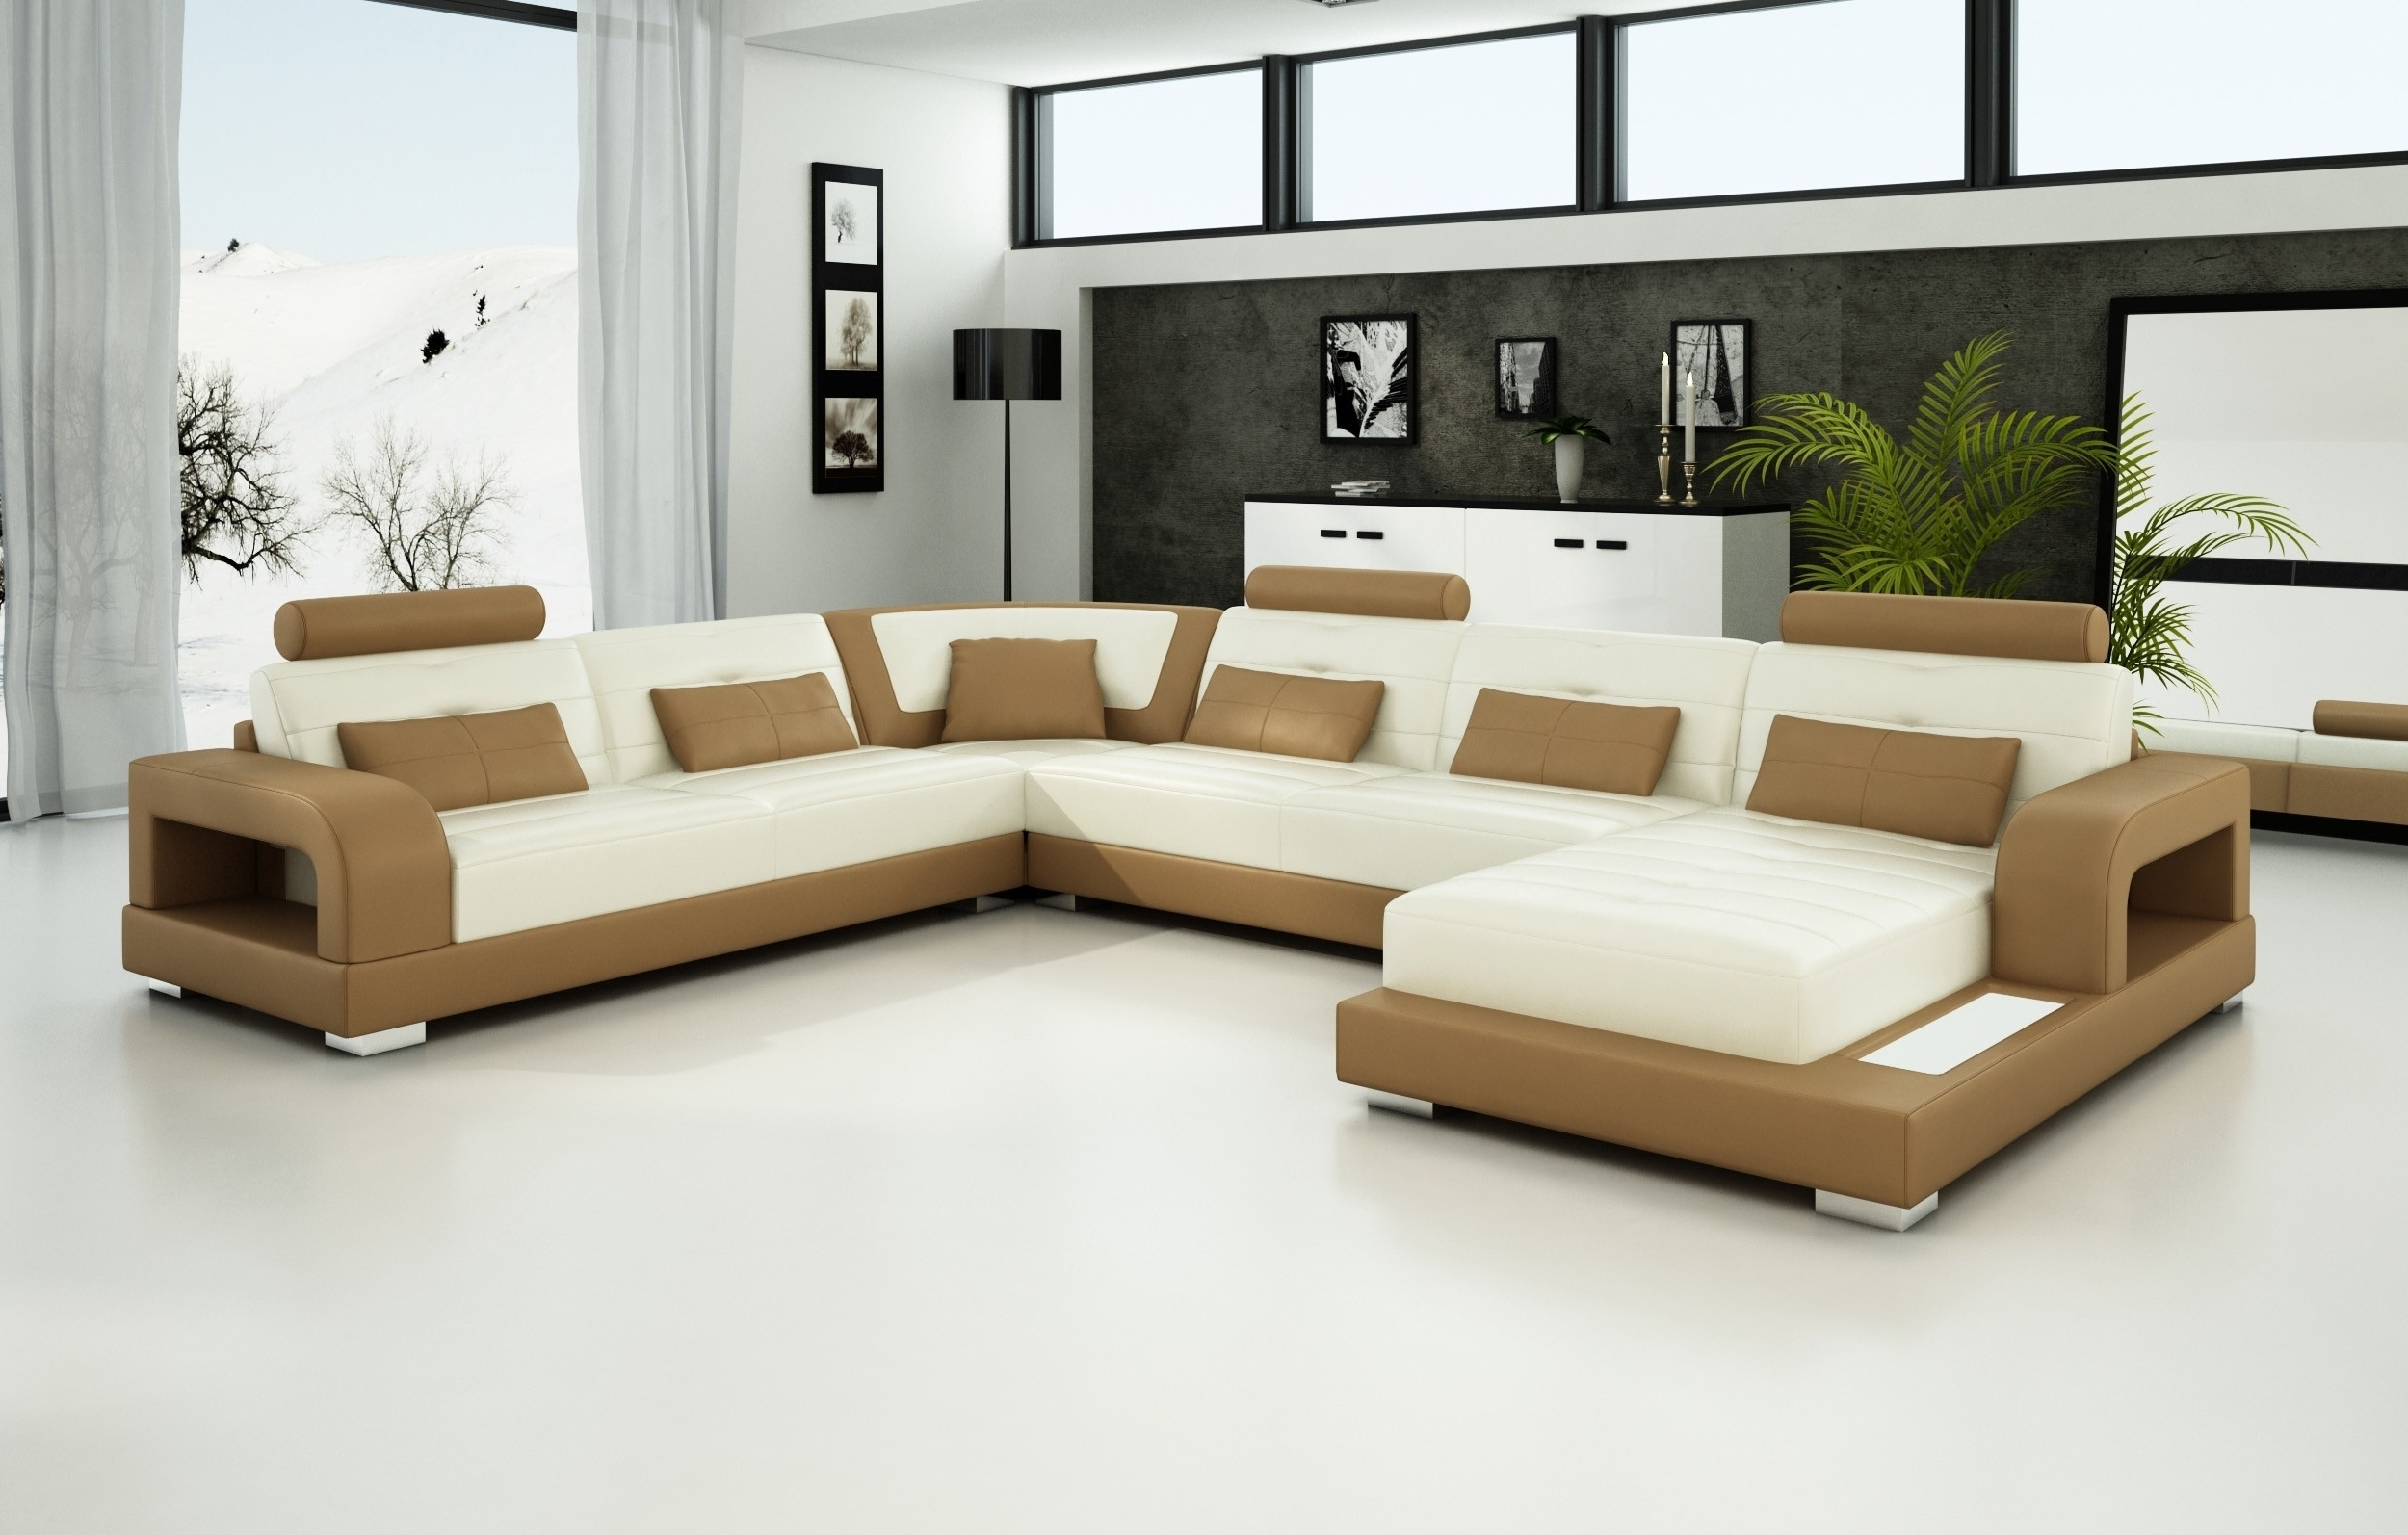 Top 20 Of Trinidad And Tobago Sectional Sofas Within Trinidad And Tobago Sectional Sofas (View 2 of 10)